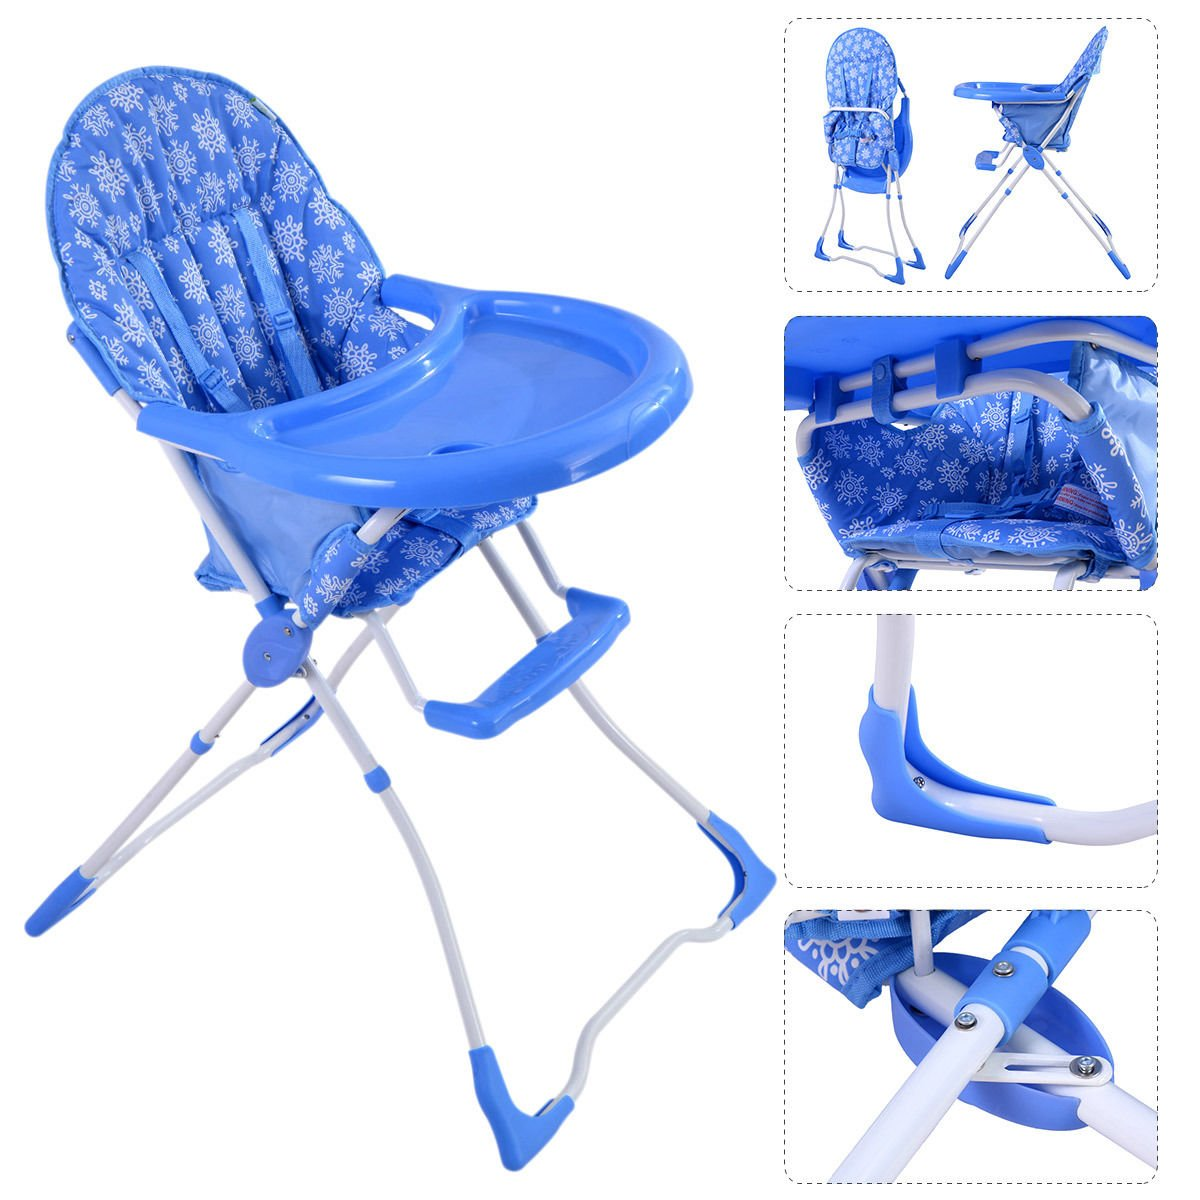 K&A Company Adjustable Baby Toddler Feeding Booster Chair Seat High Folding Infant Portable Highchair in Blue